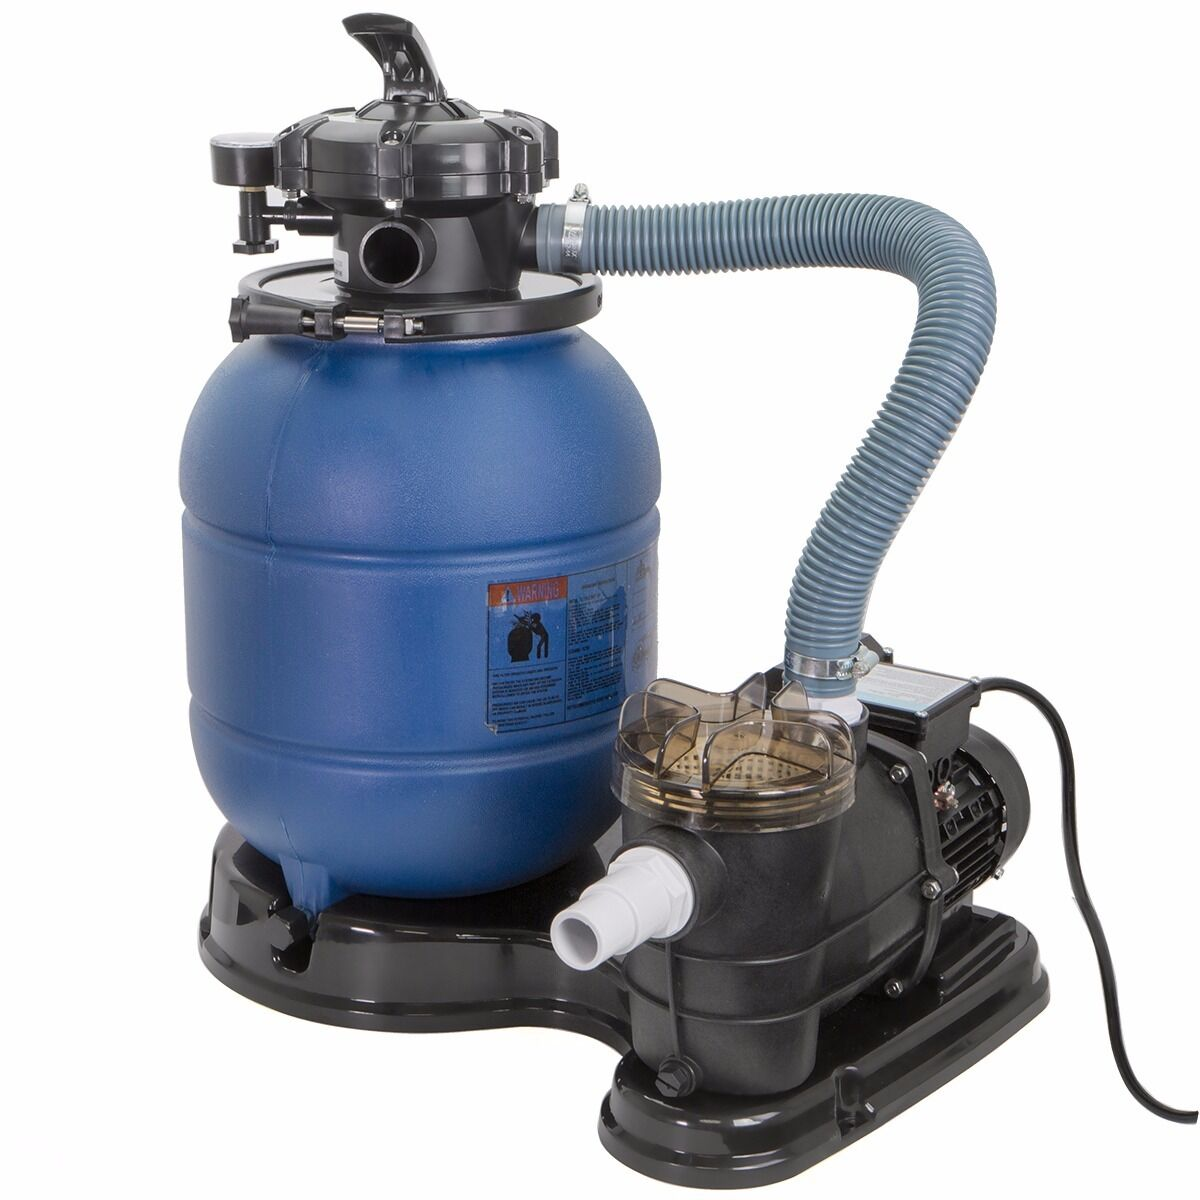 2400gph 13 sand filter 3 4 hp above ground swimming pool pump intex compatible ebay